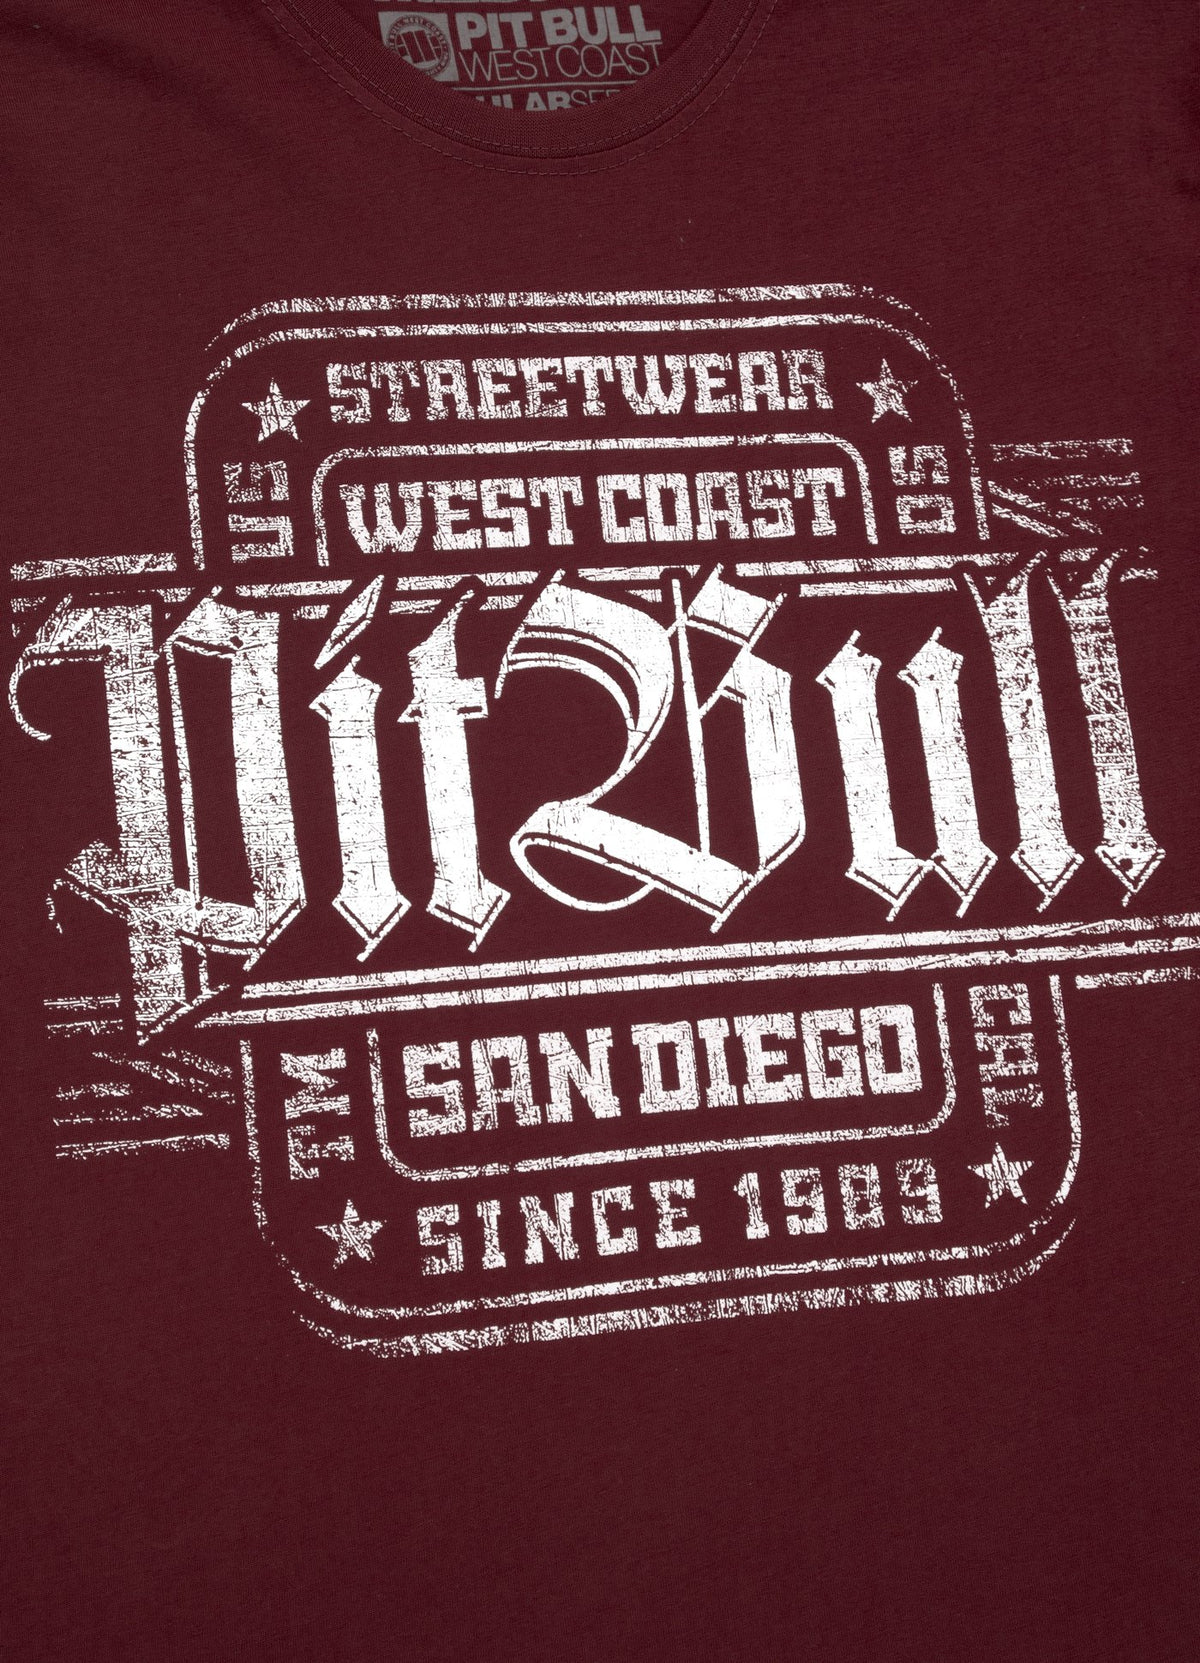 T-shirt SAN DIEGO IV Burgundy - Pitbull West Coast U.S.A.